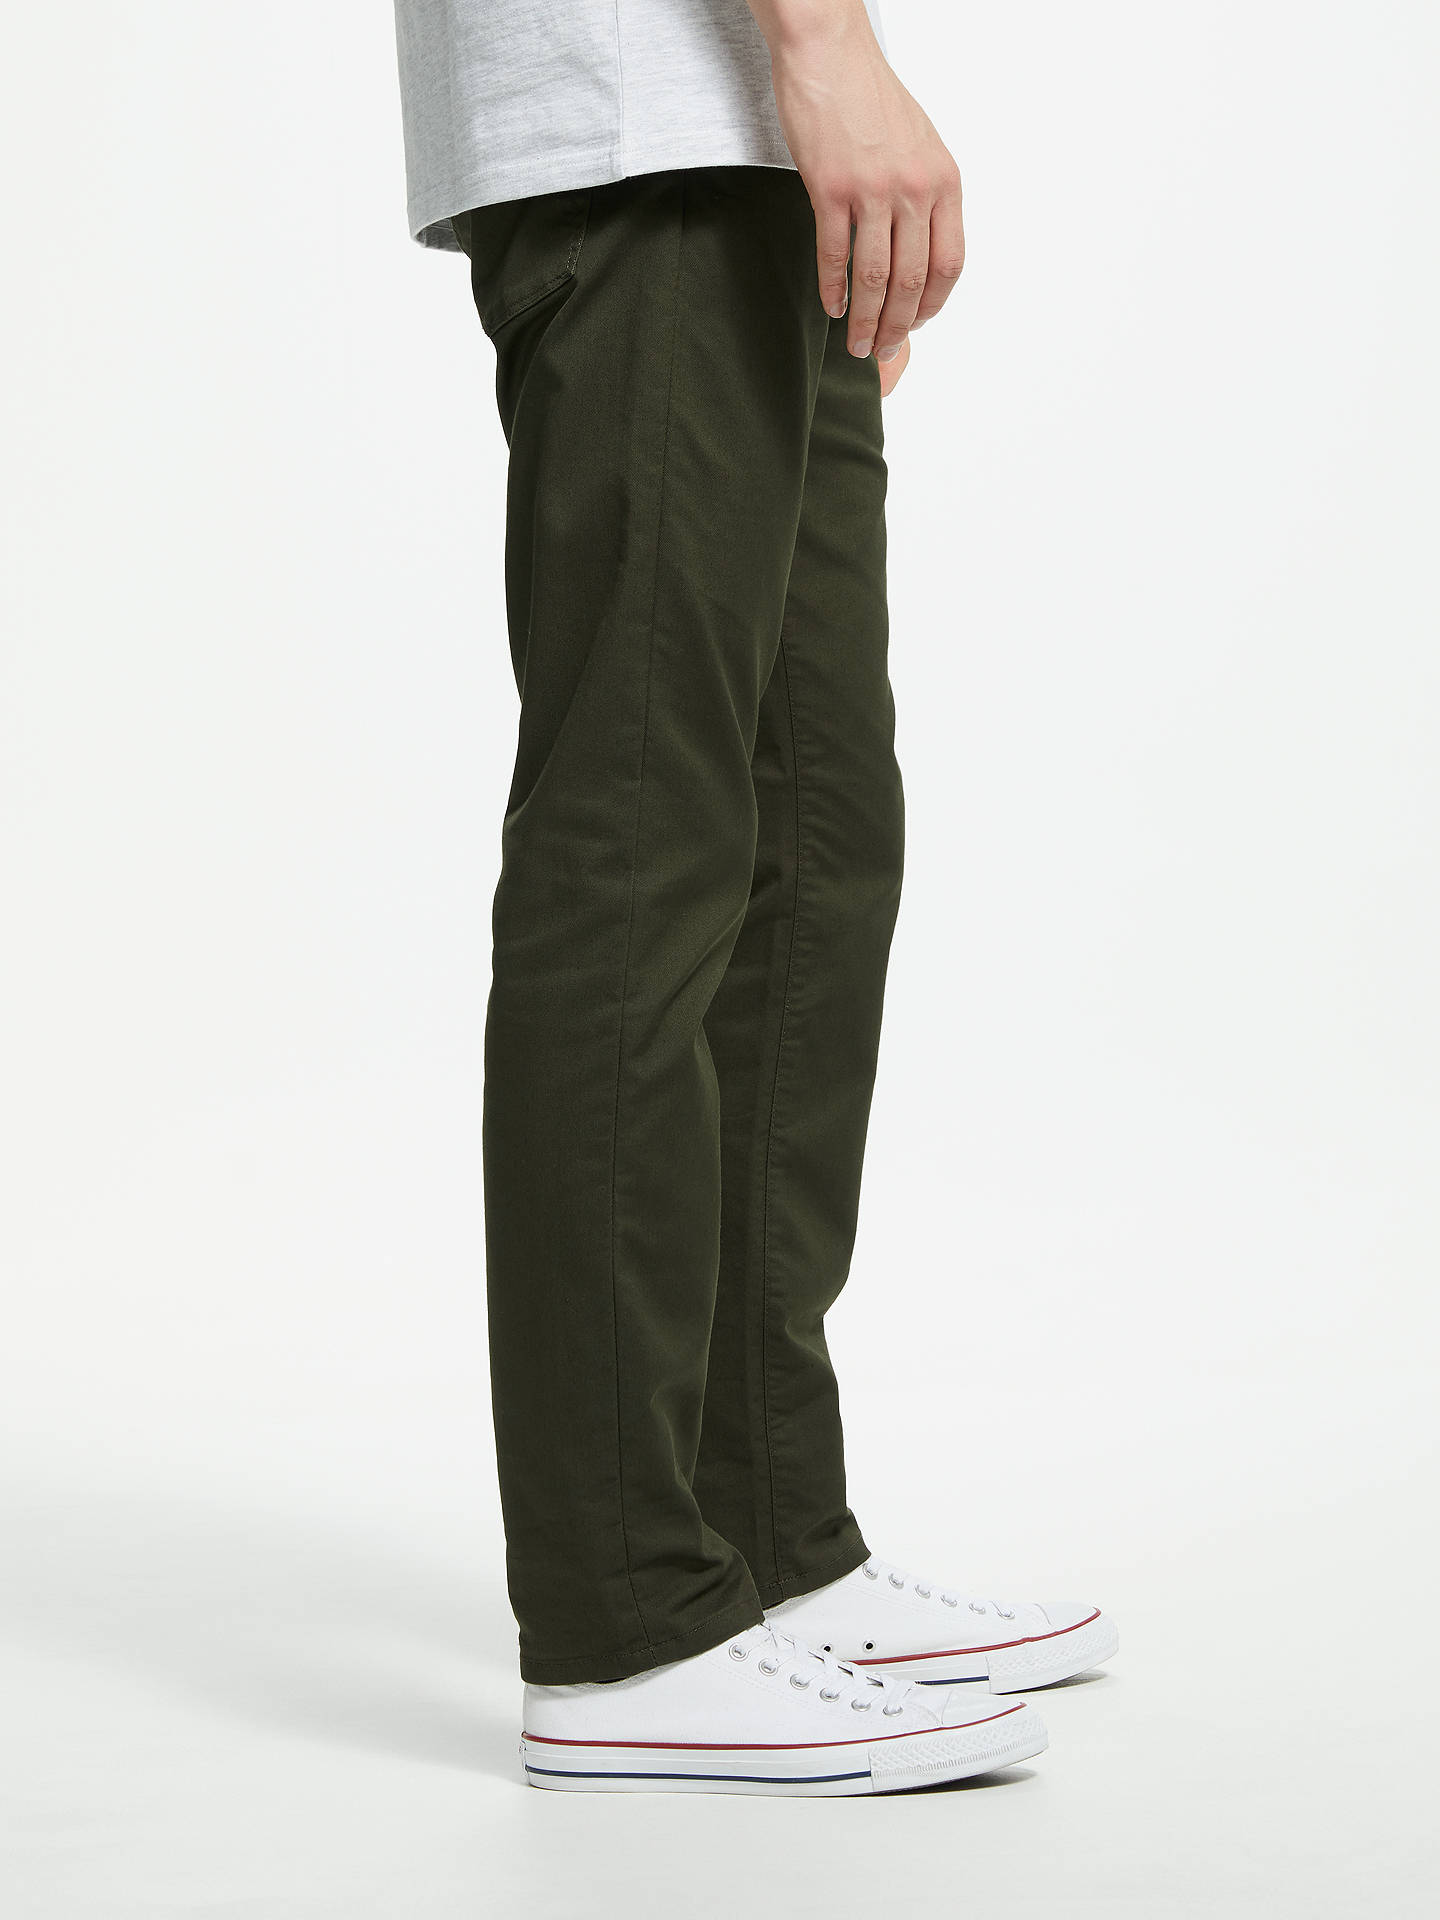 BuyCarhartt WIP Viscous Slim Tapered Chinos, Cypress, 30R Online at johnlewis.com